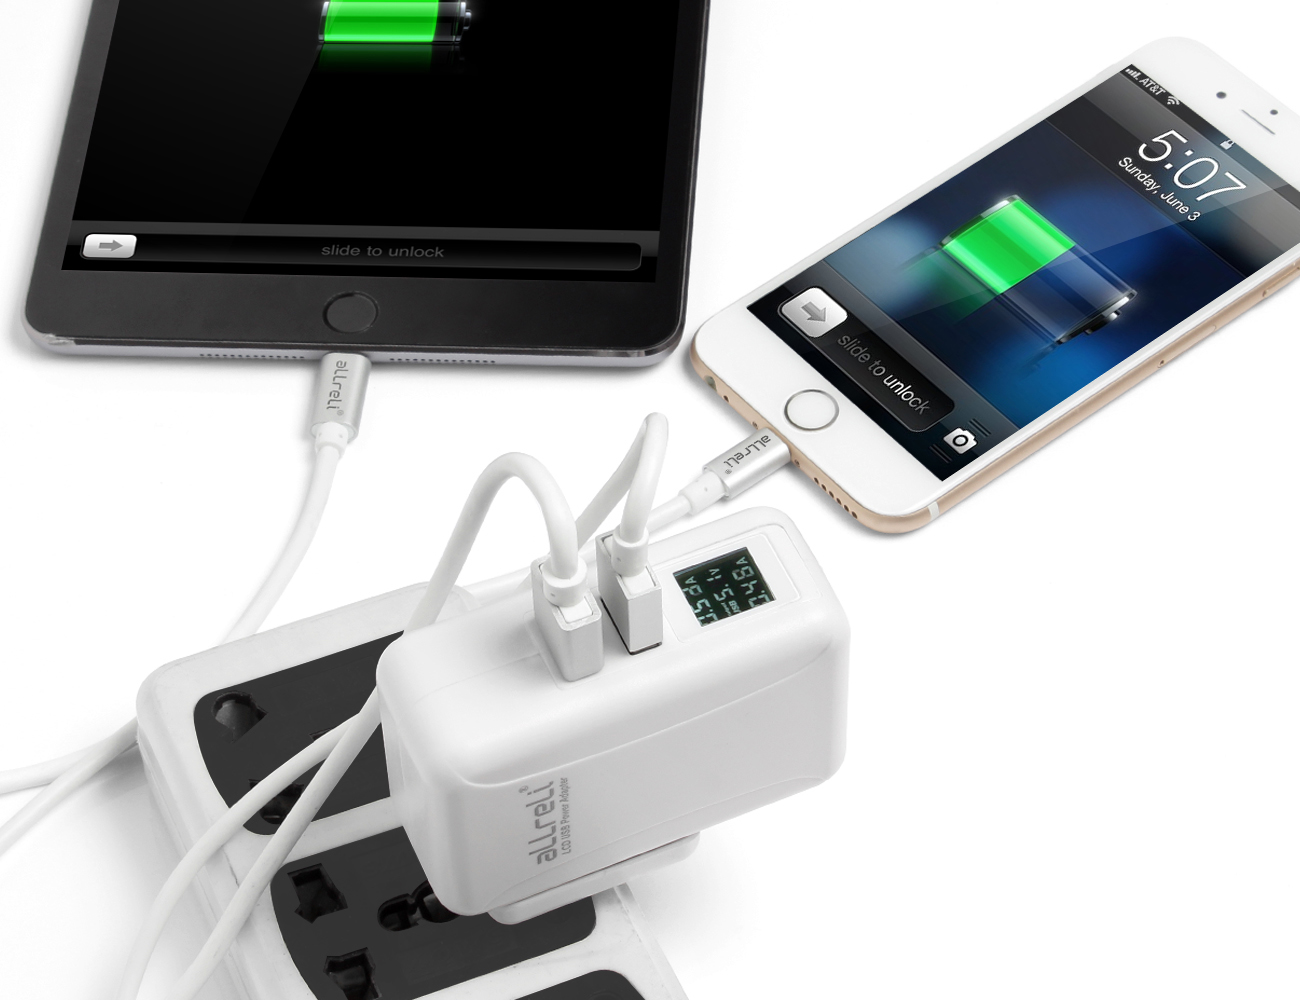 aLLreLi 24W / 4.8A Dual USB Travel Charger Kit With LCD Display & Smart IC